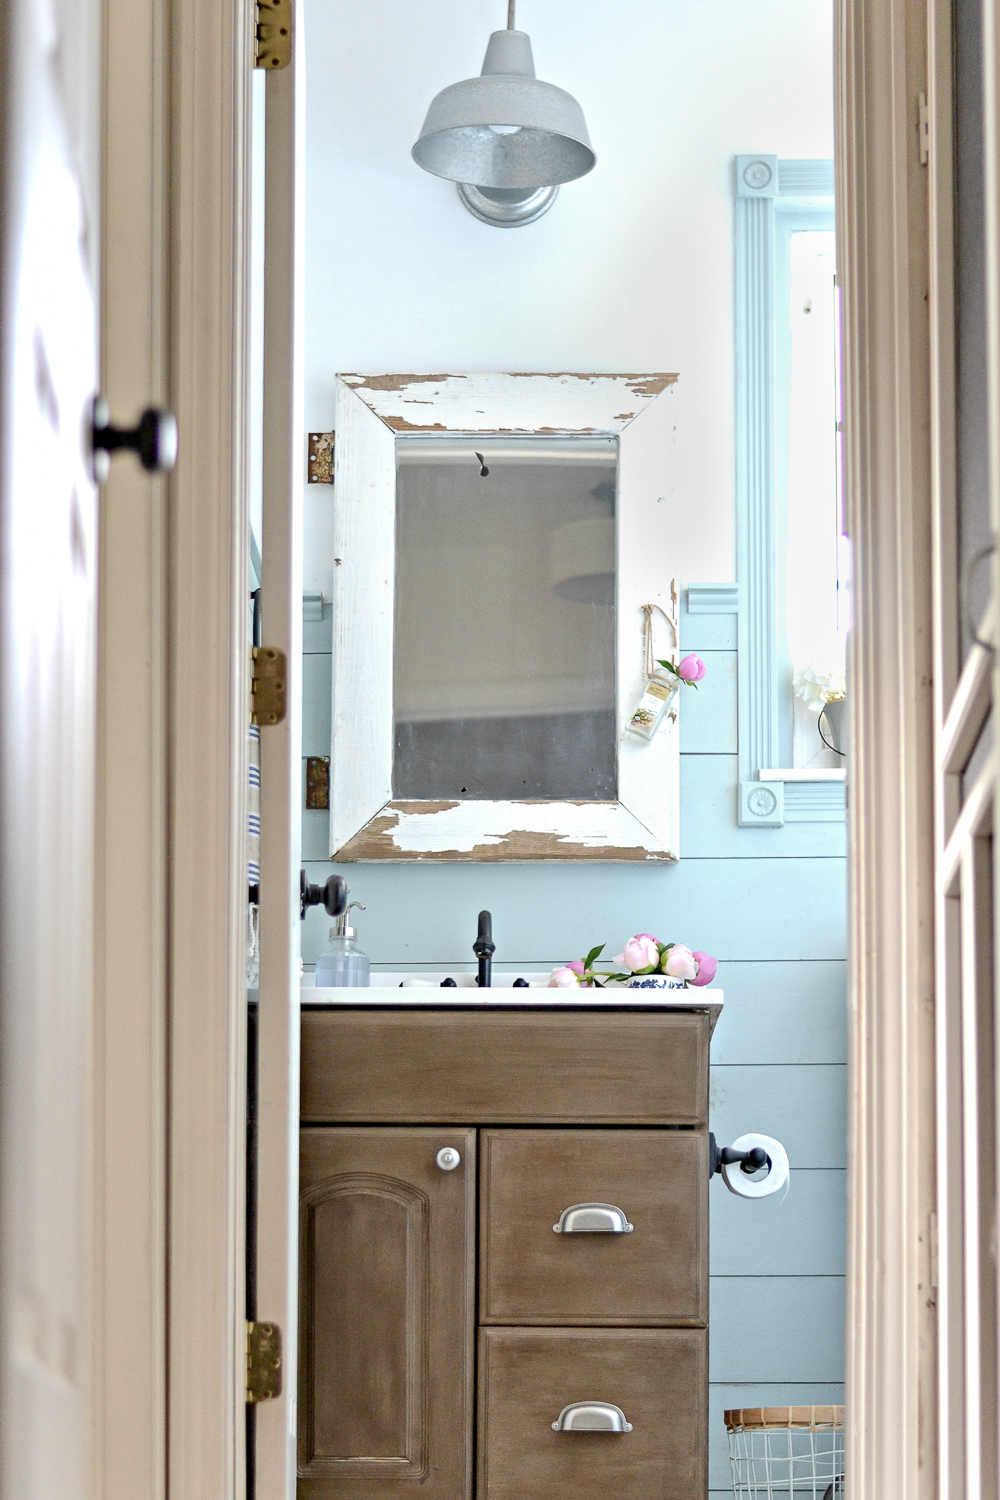 DIY Painted vanity update. Upgrade your vanity instead of replacing it with this tutorial!